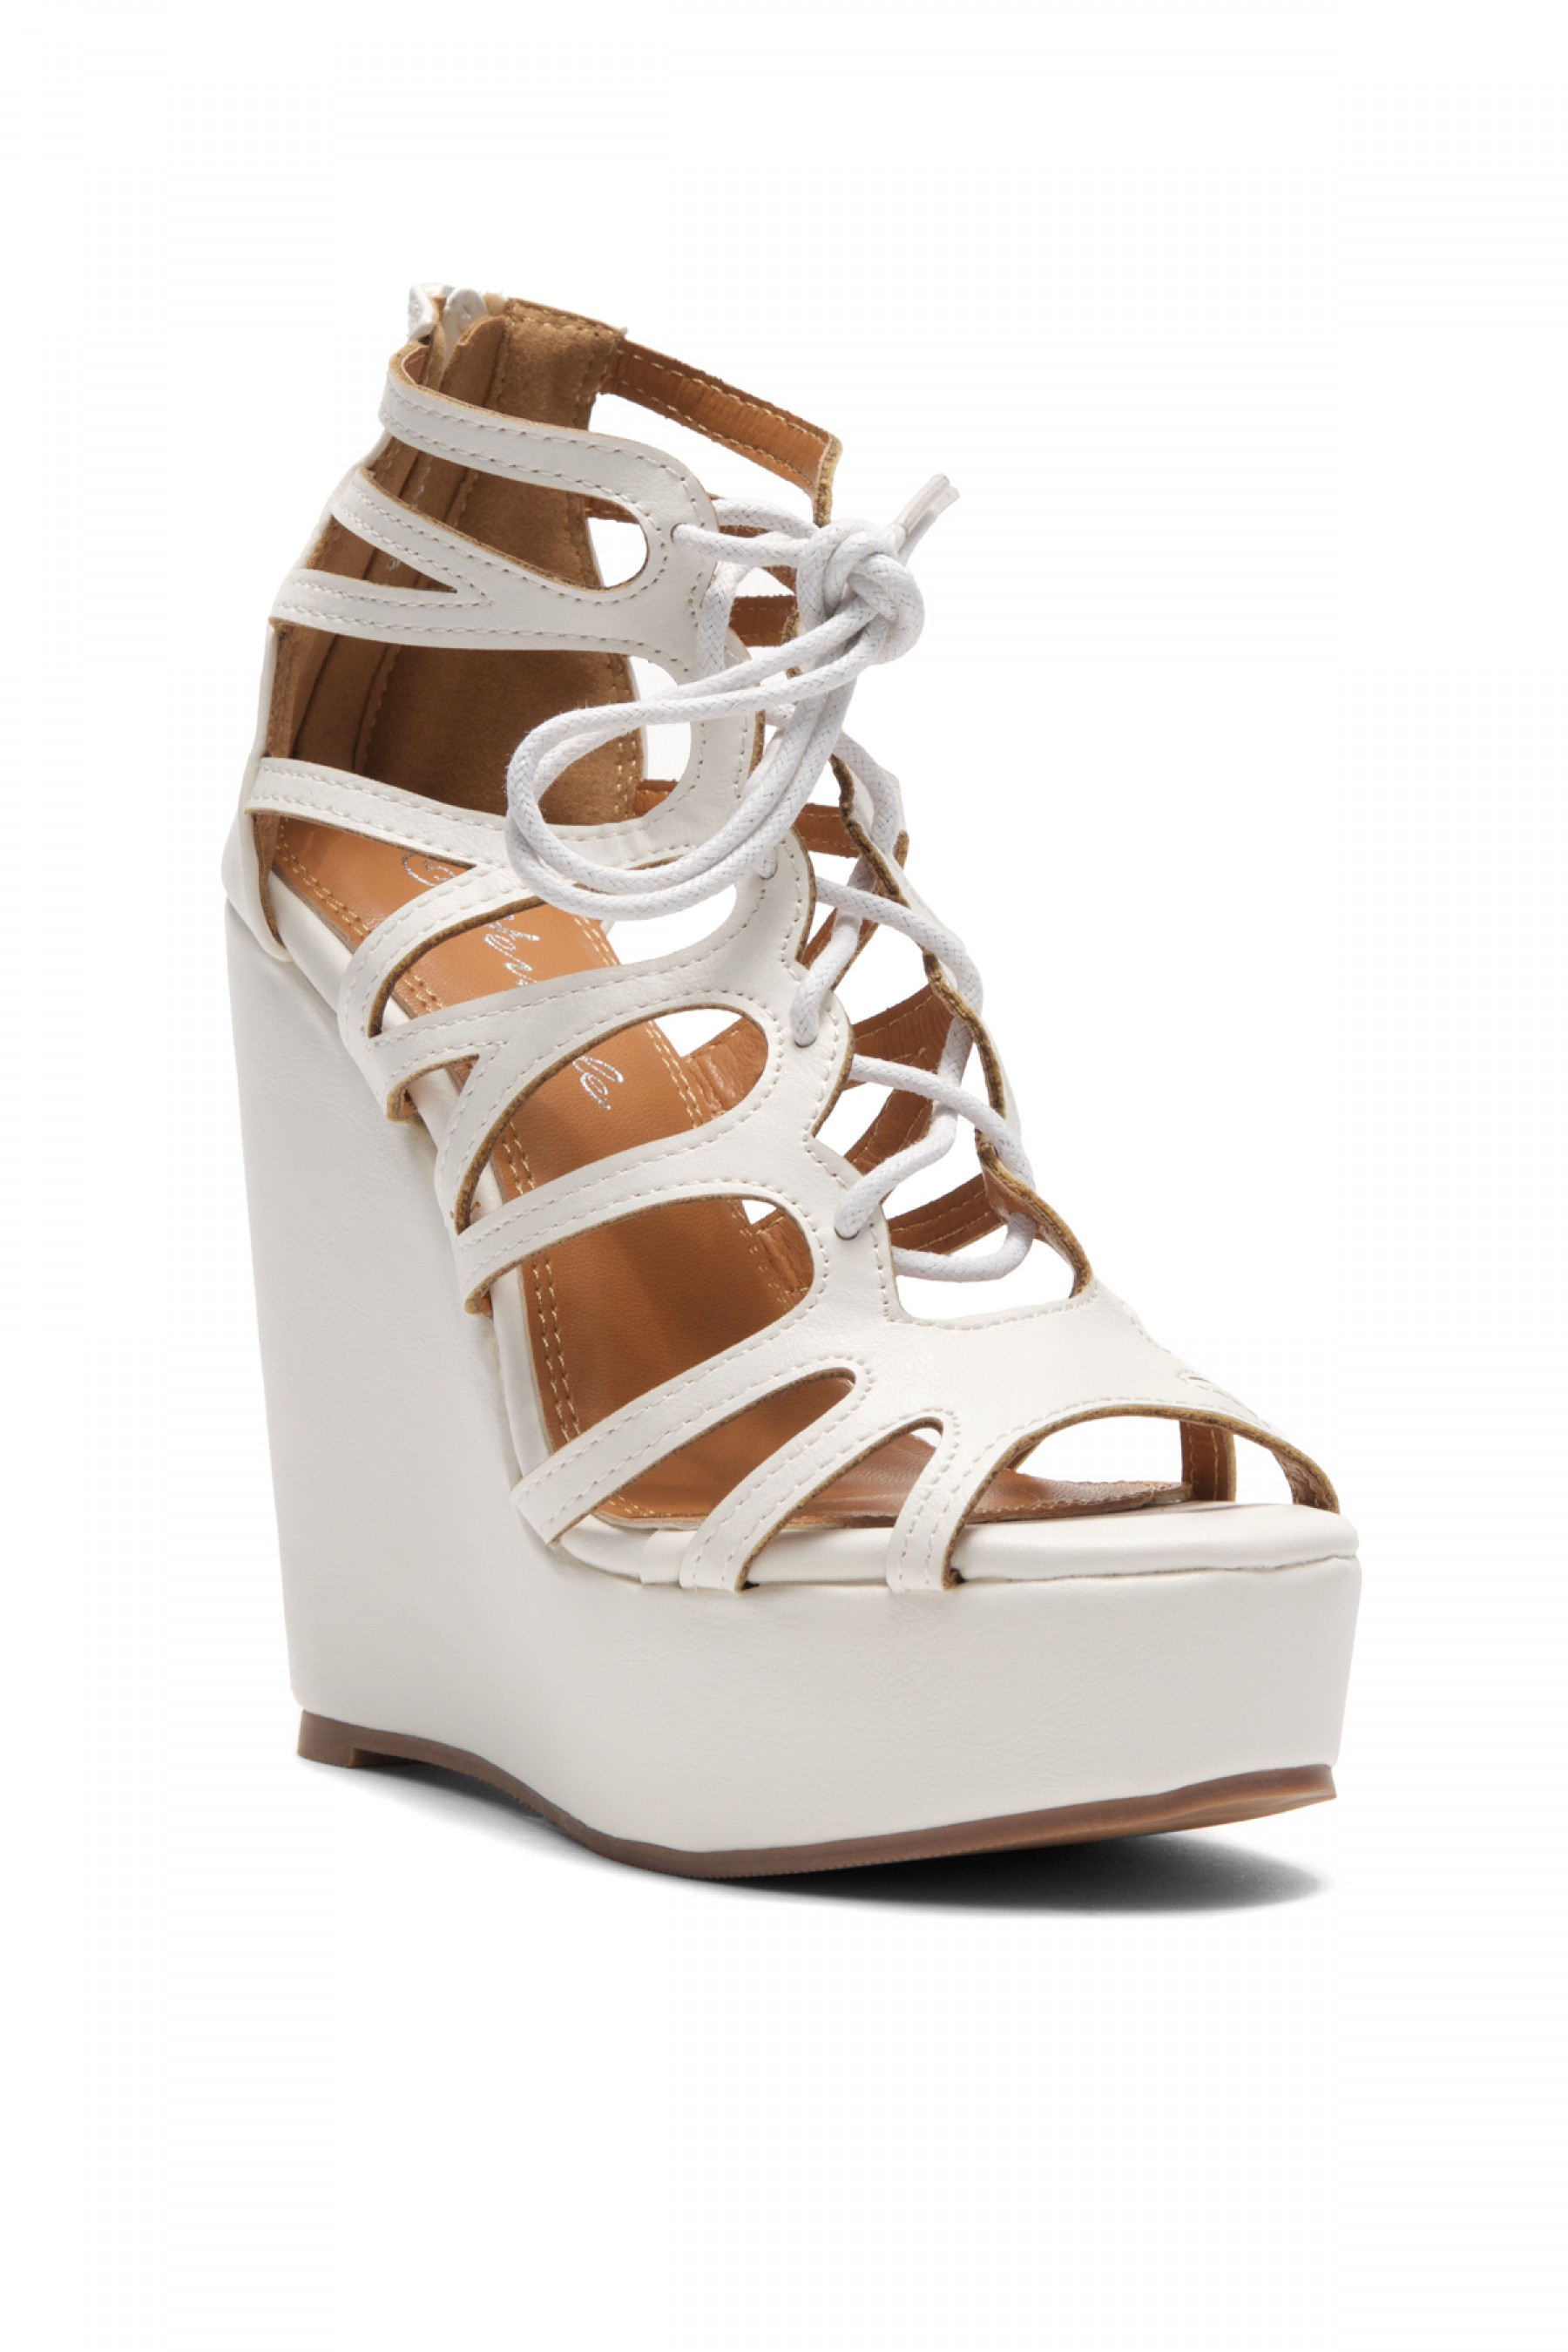 Women's White Alessaa 5-inch Wedge Sandal with Faux Leather Styling